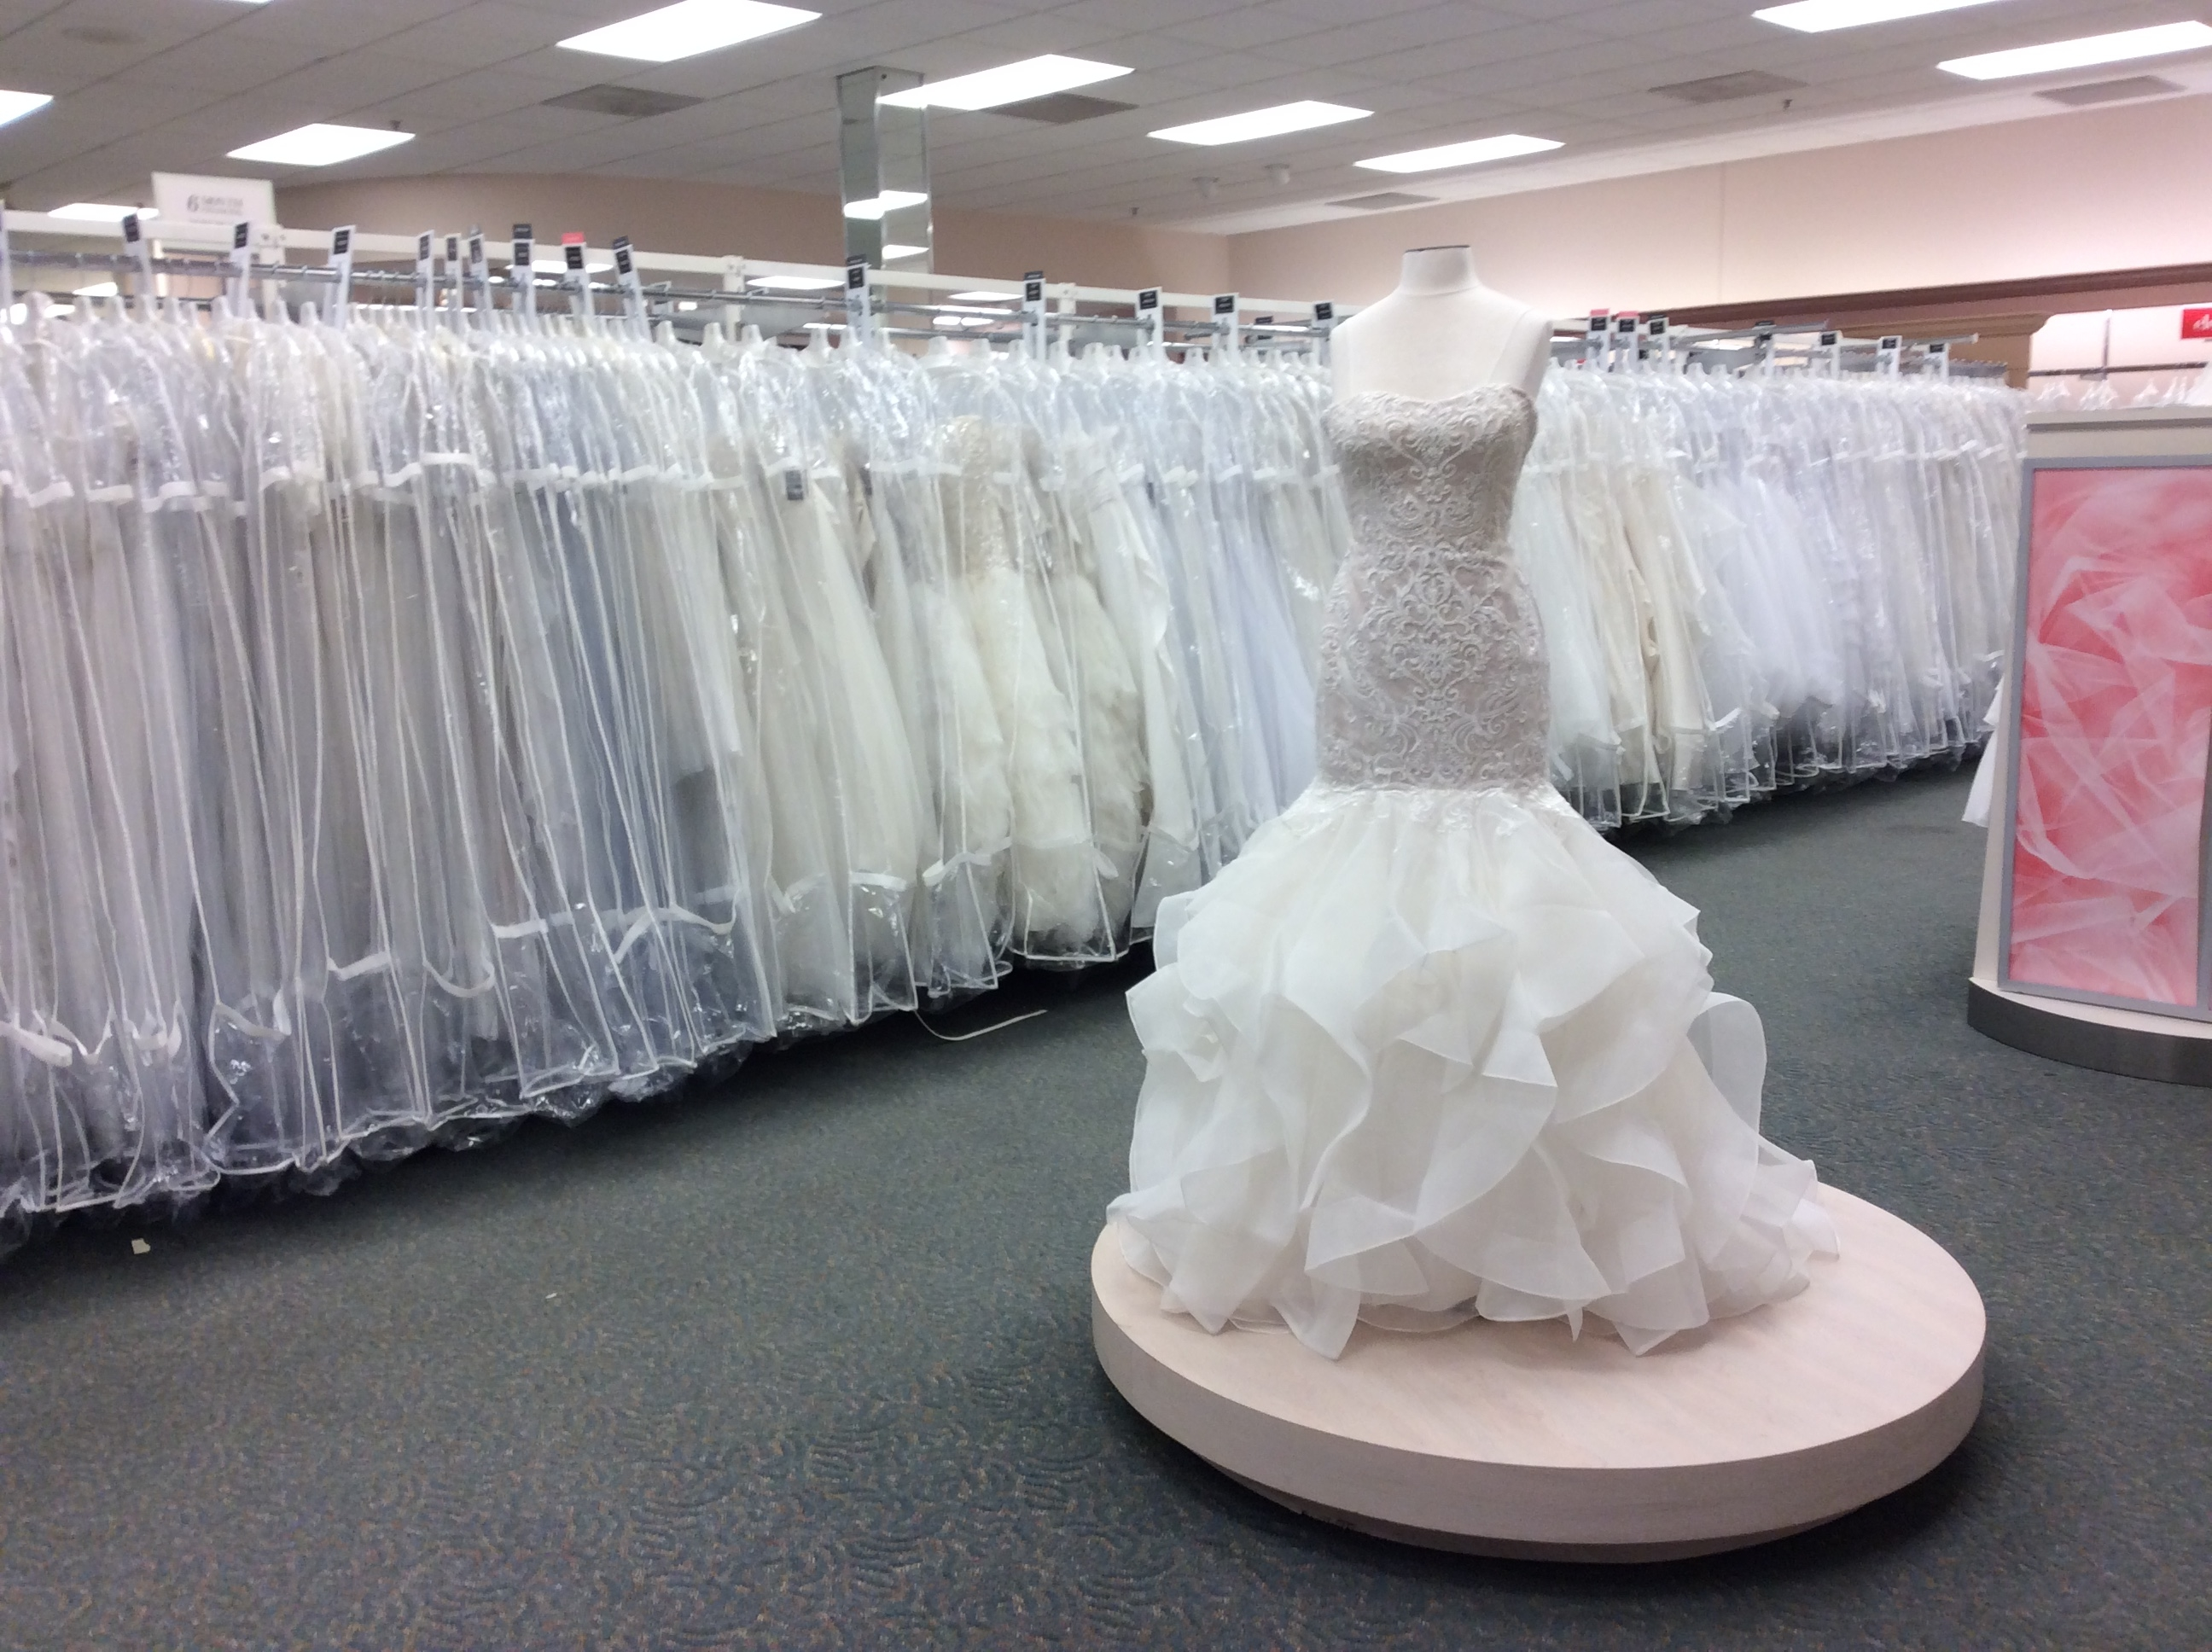 David S Bridal 1820 Gunbarrel Rd Ste 400 Chattanooga Tn